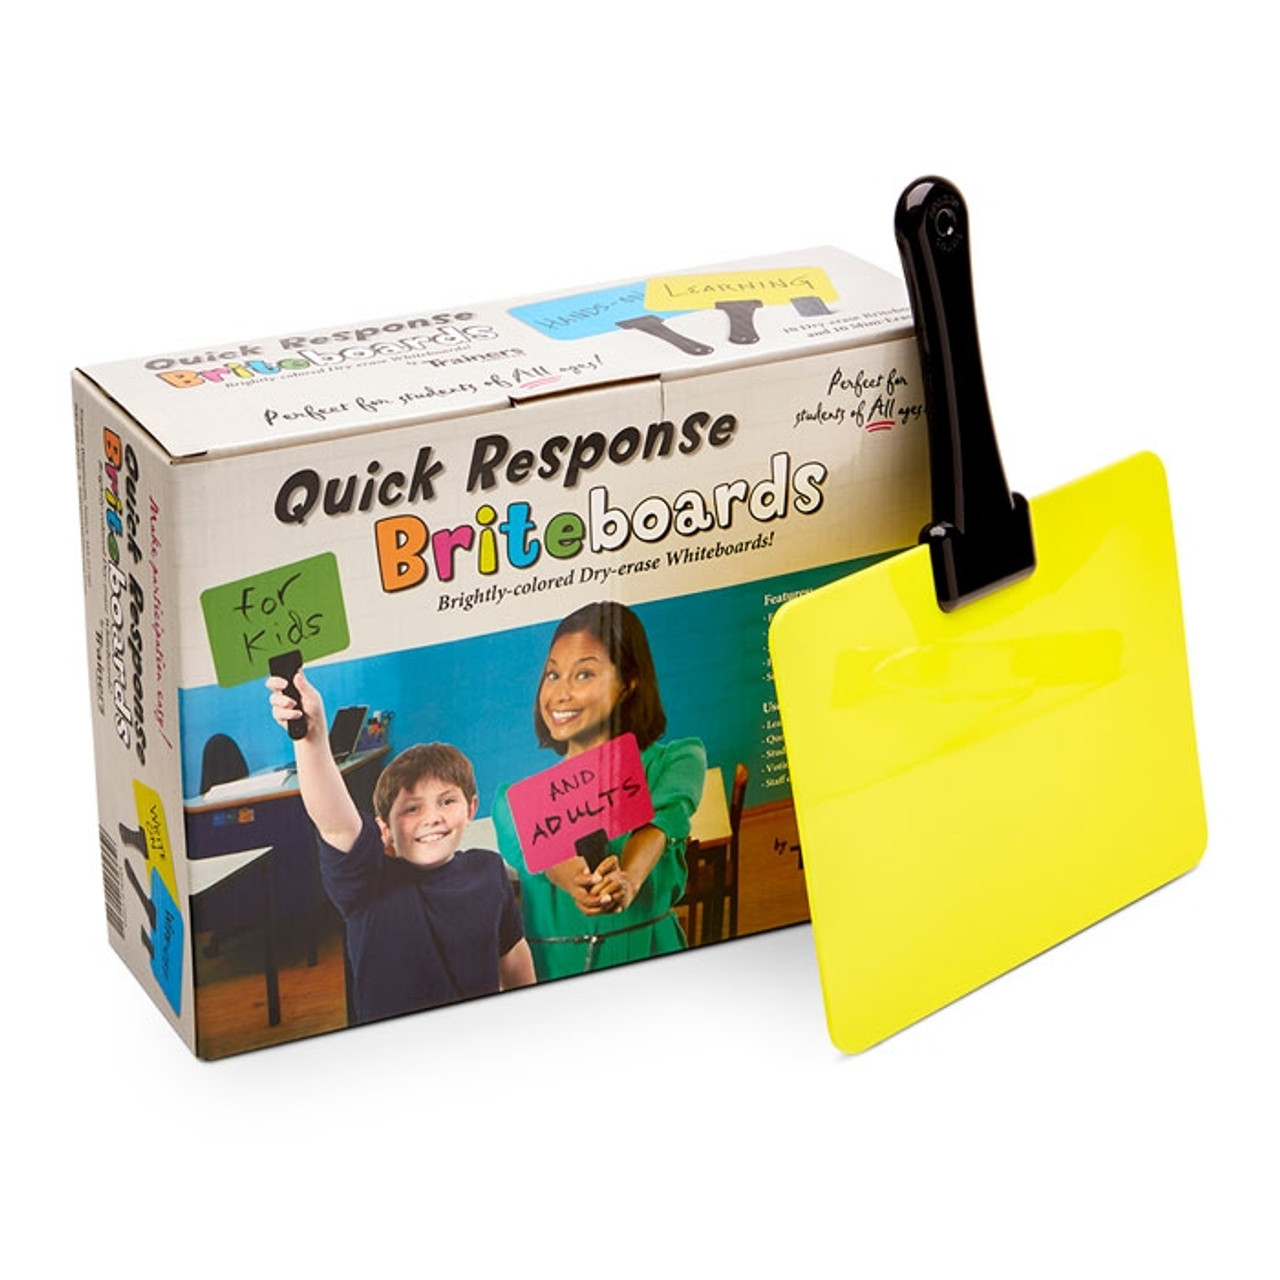 Briteboards Dry-erase Fluorescent Response Boards with mini-erasers set of 10